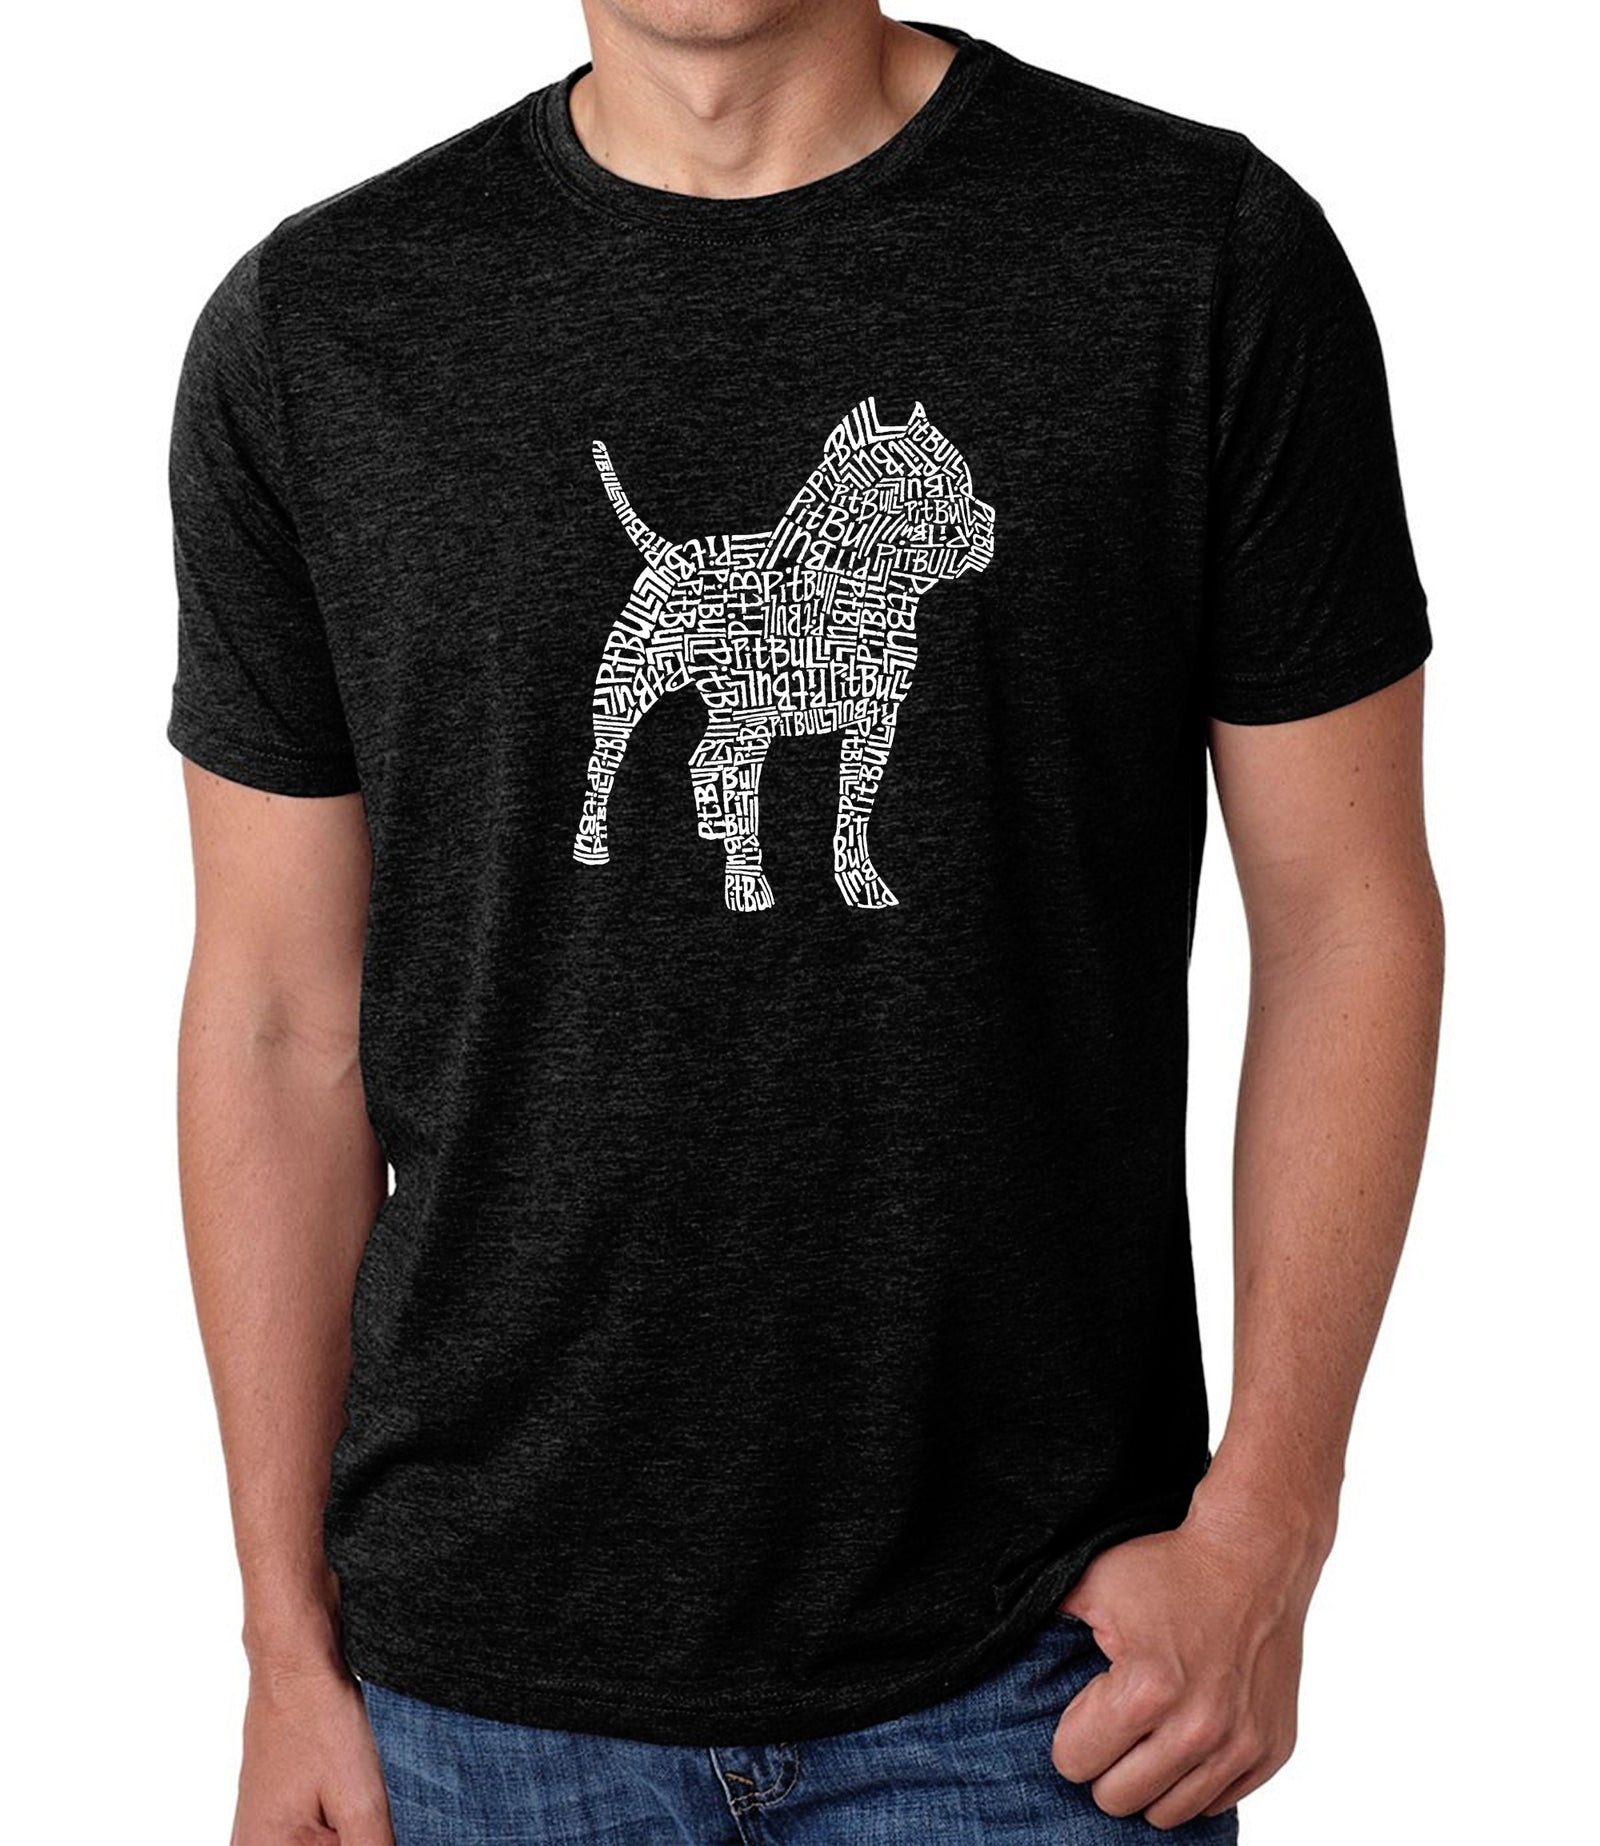 Men's Premium Blend Word Art T-shirt - Pitbull